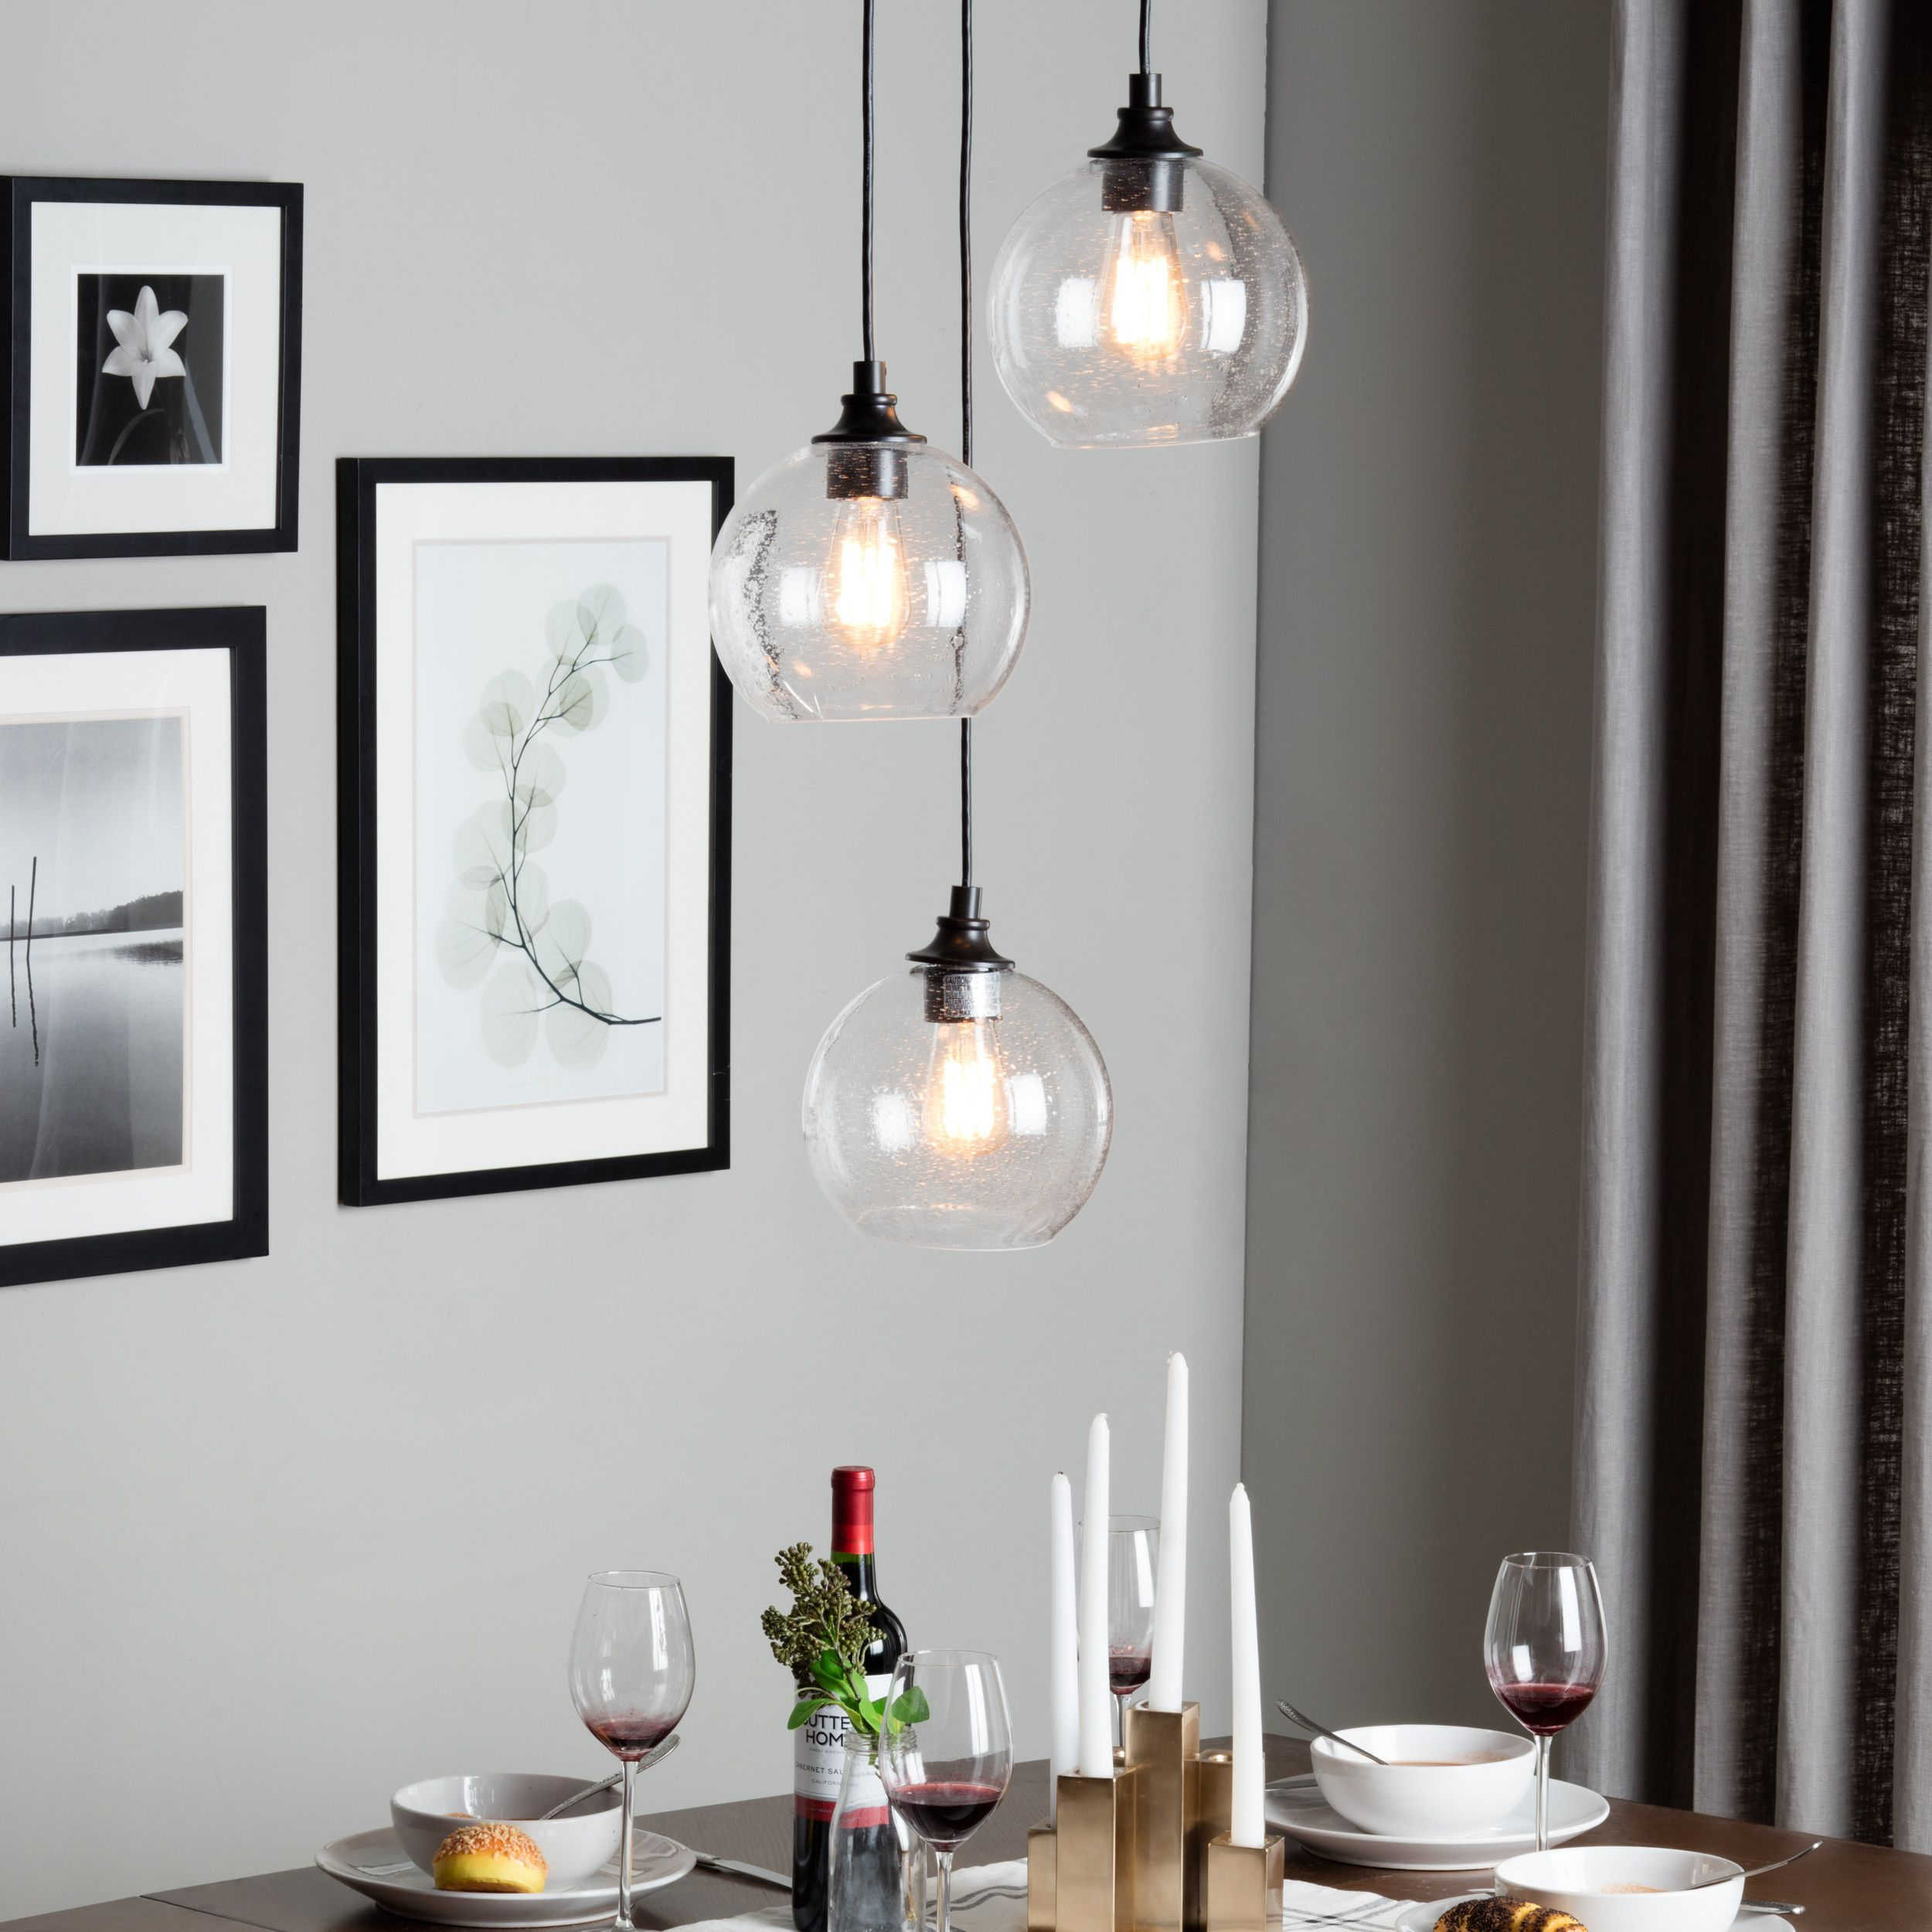 Hanging Dining Room Light: Pendant Lighting For Dining Room